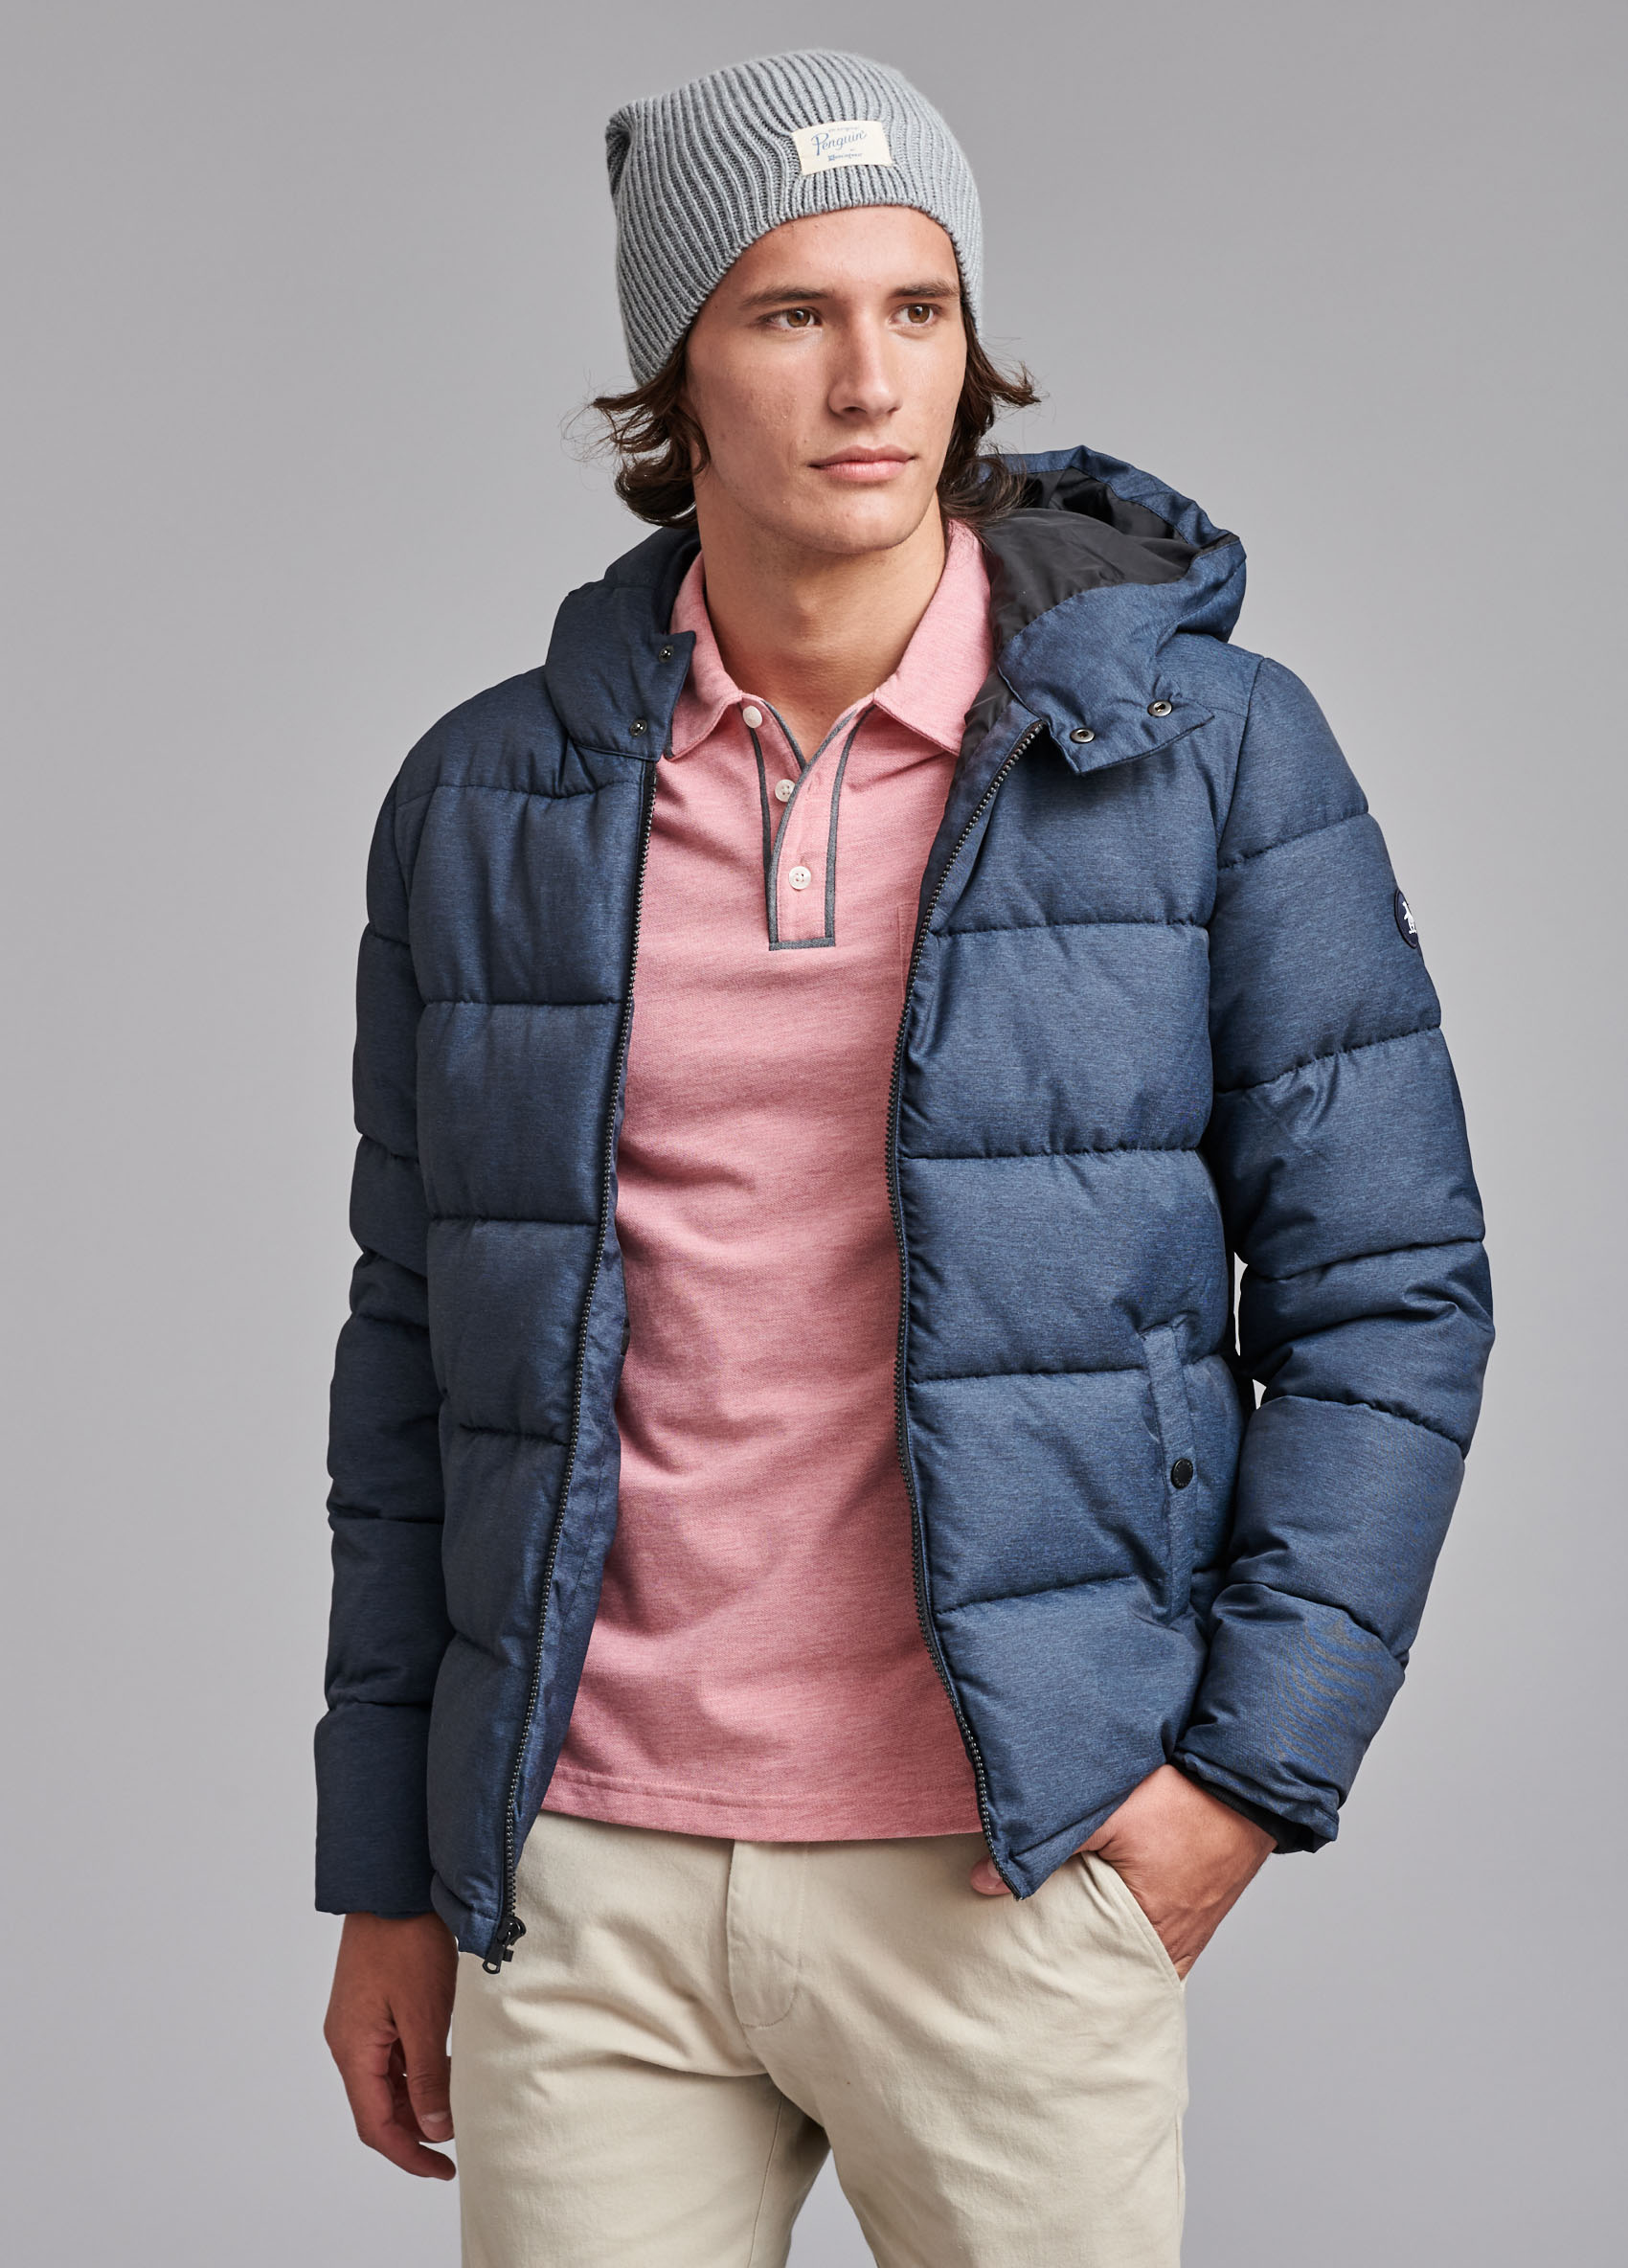 penguin_insulated-melange-puffer-jacket_58-15-2019__picture-8937